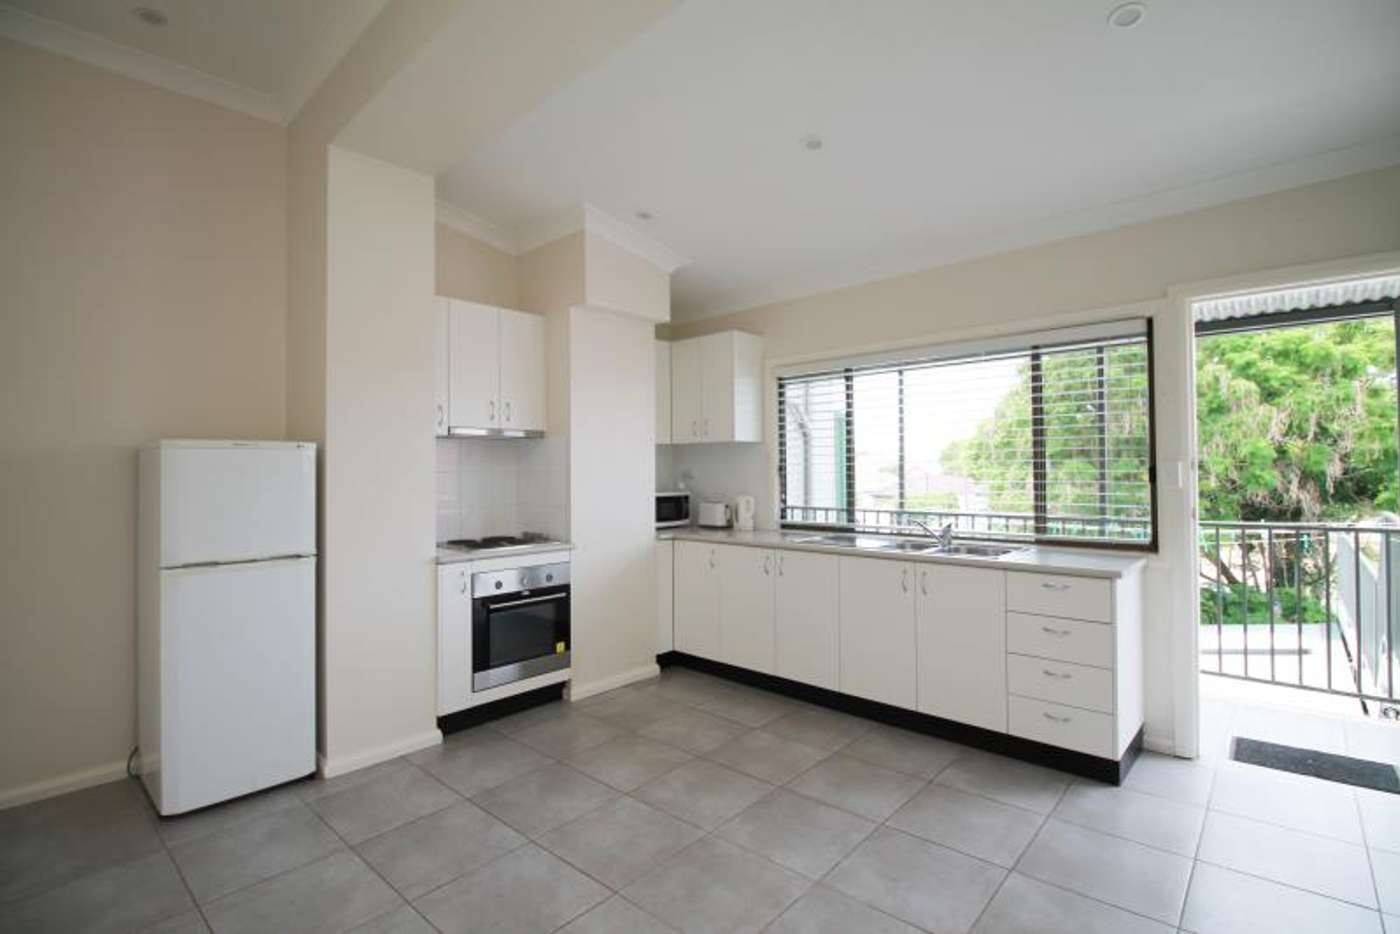 Main view of Homely apartment listing, 1183 Botany Lane, Mascot NSW 2020